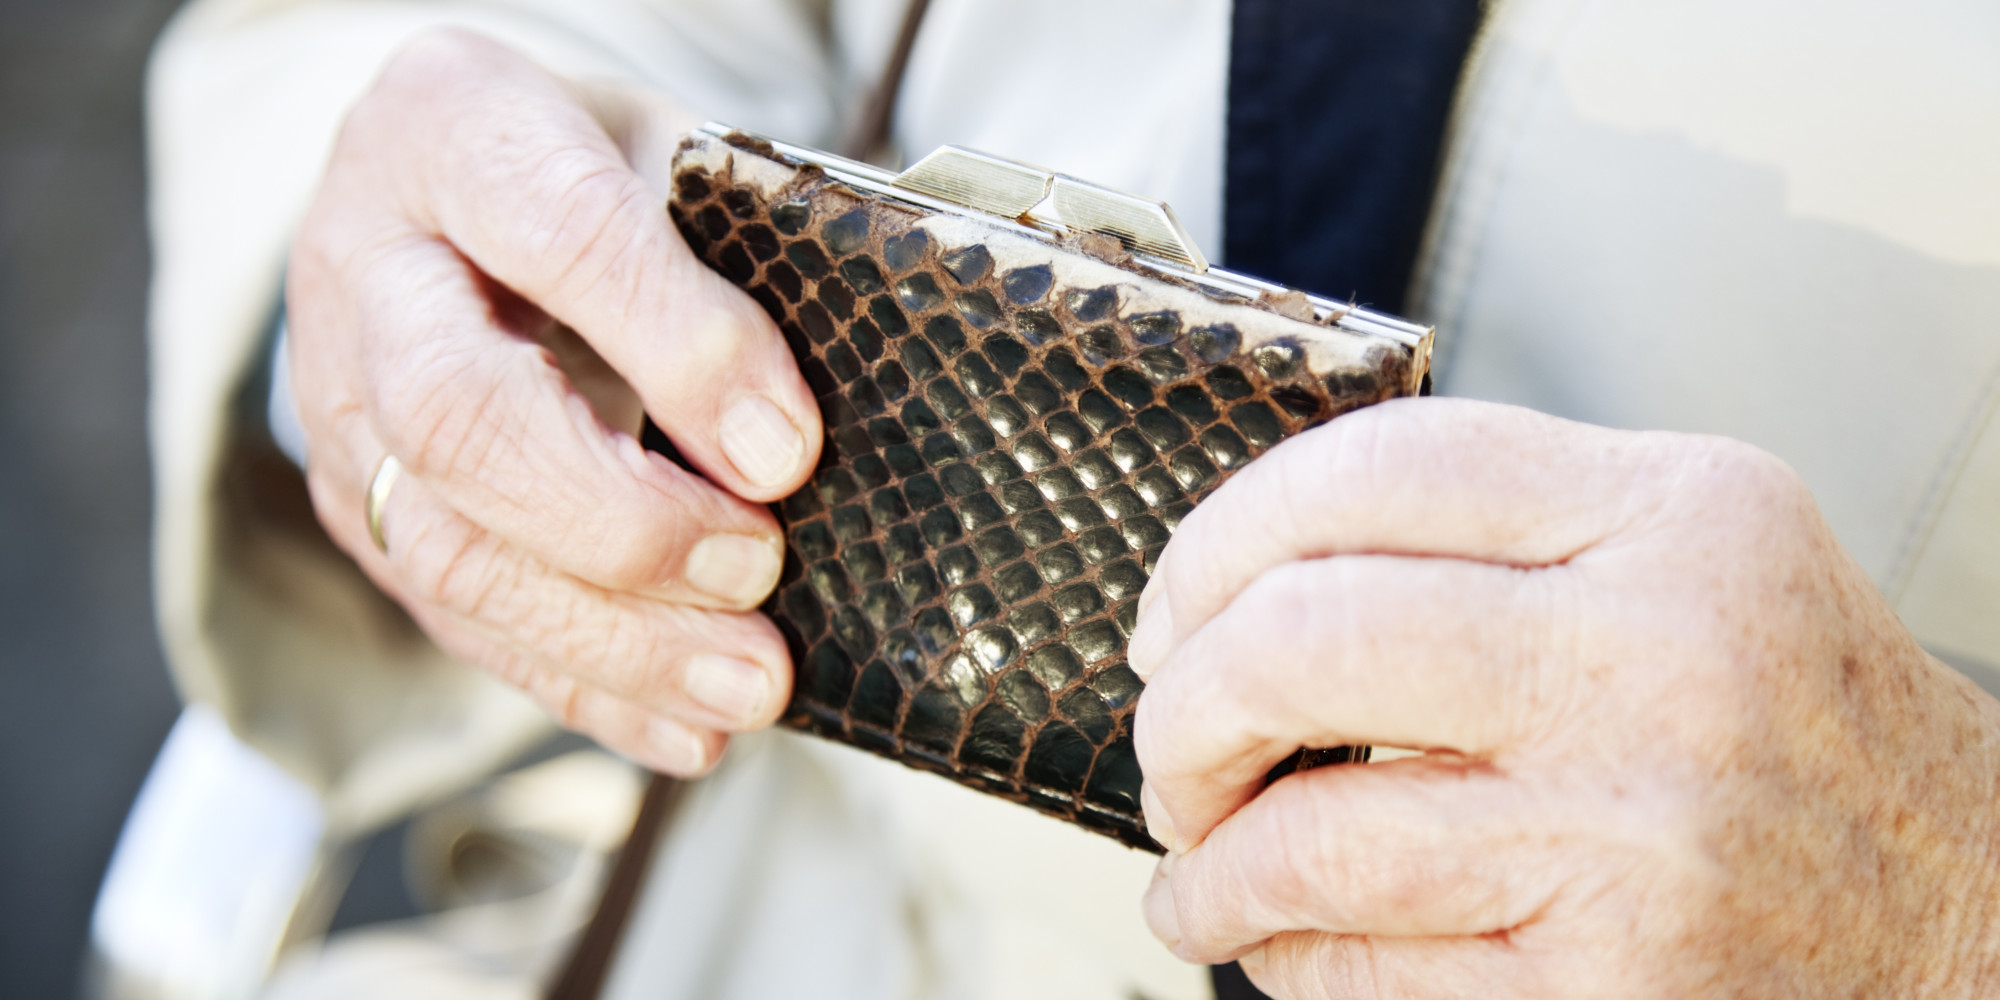 Senior hands holding purse